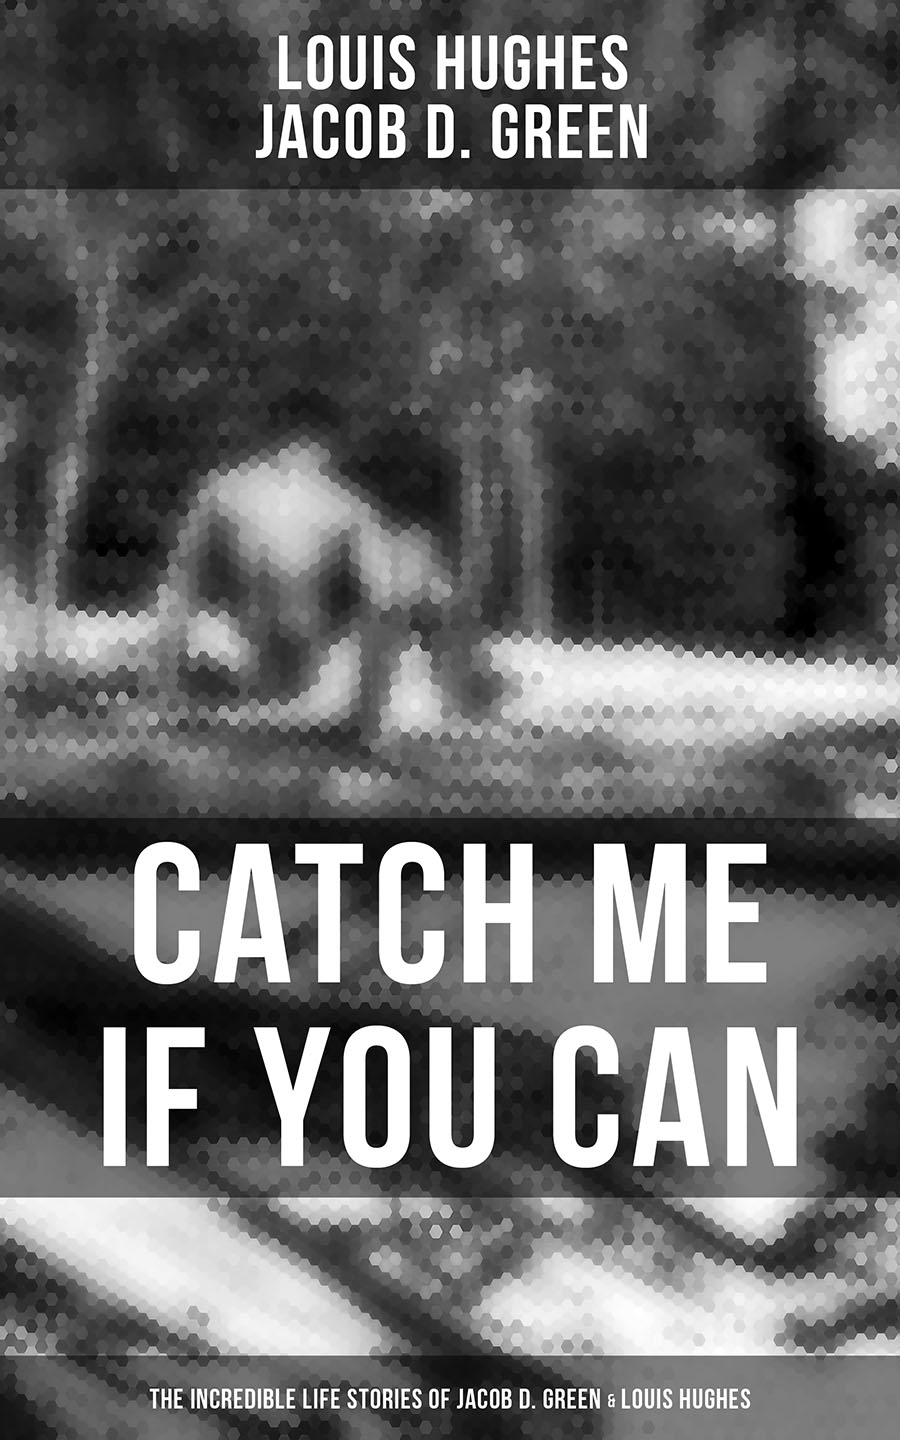 Louis Hughes CATCH ME IF YOU CAN - The Incredible Life Stories of Two Runaway Slaves: Jacob D. Green & Louis Hughes john hughes life elementary workbook 2 cd